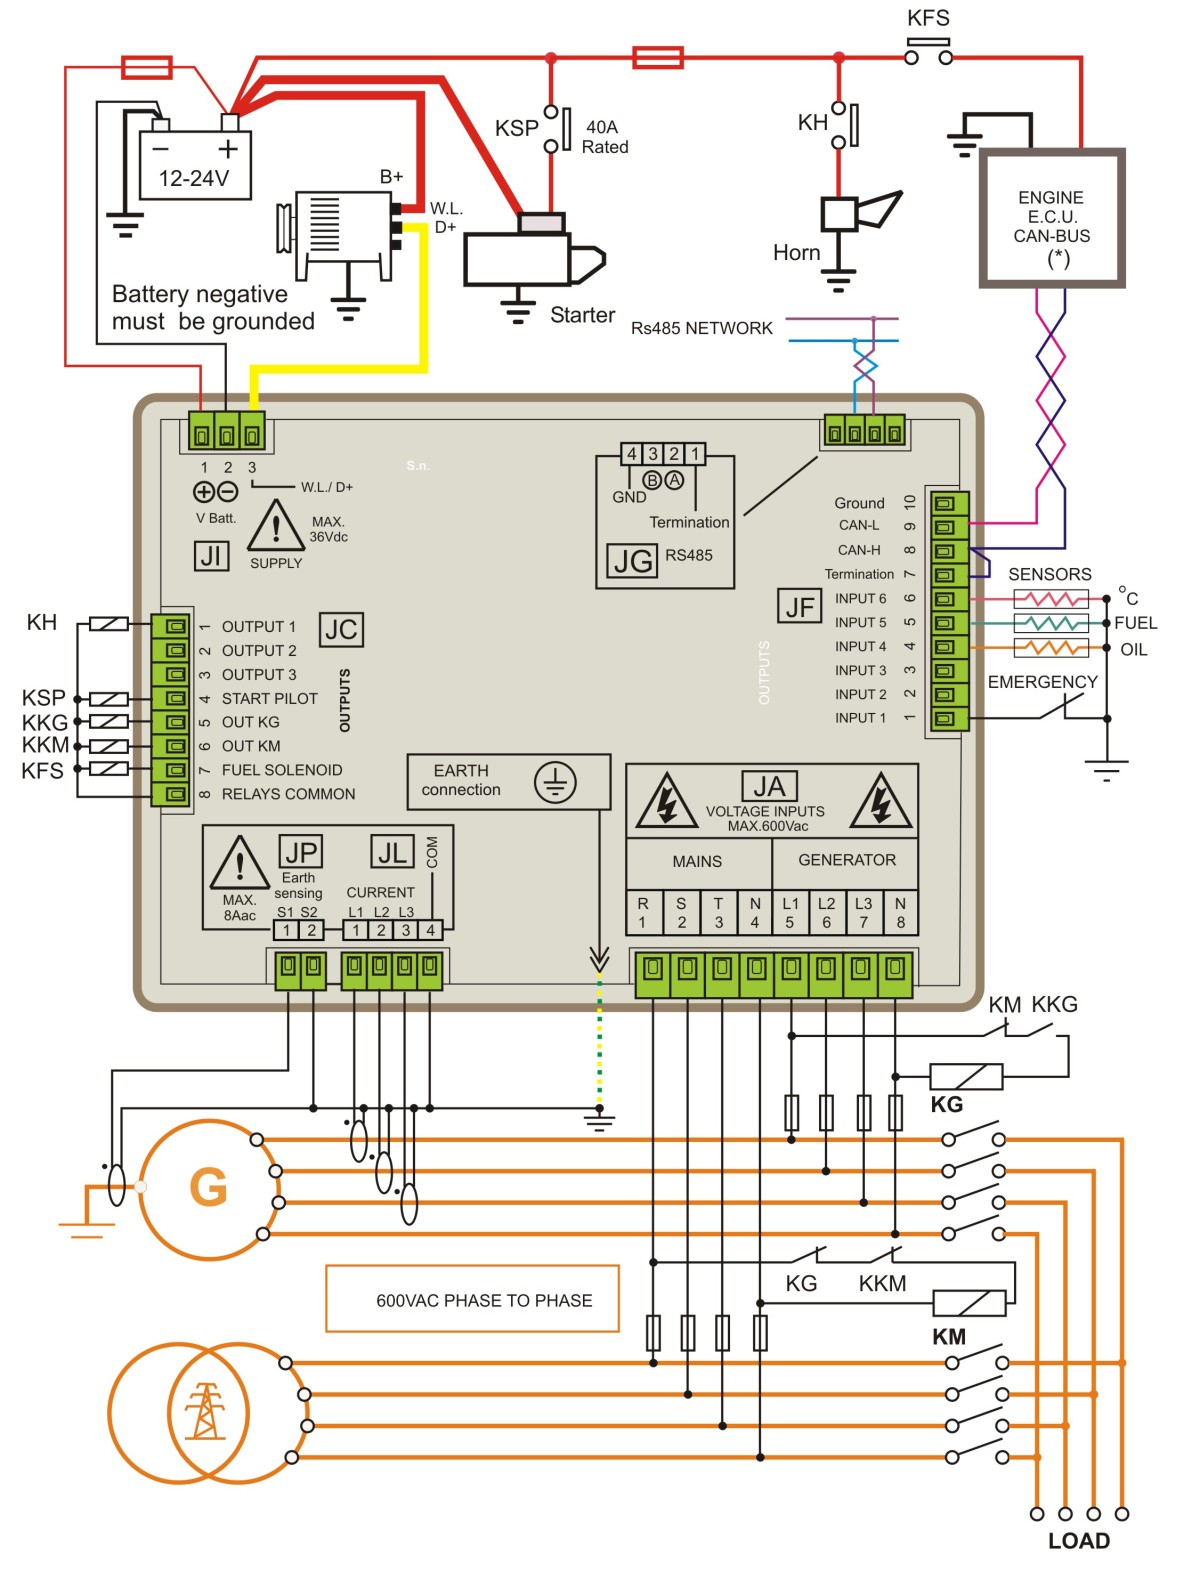 Generator Control Panel Wiring Diagram - Wiring Diagram Explained - Generator Wiring Diagram